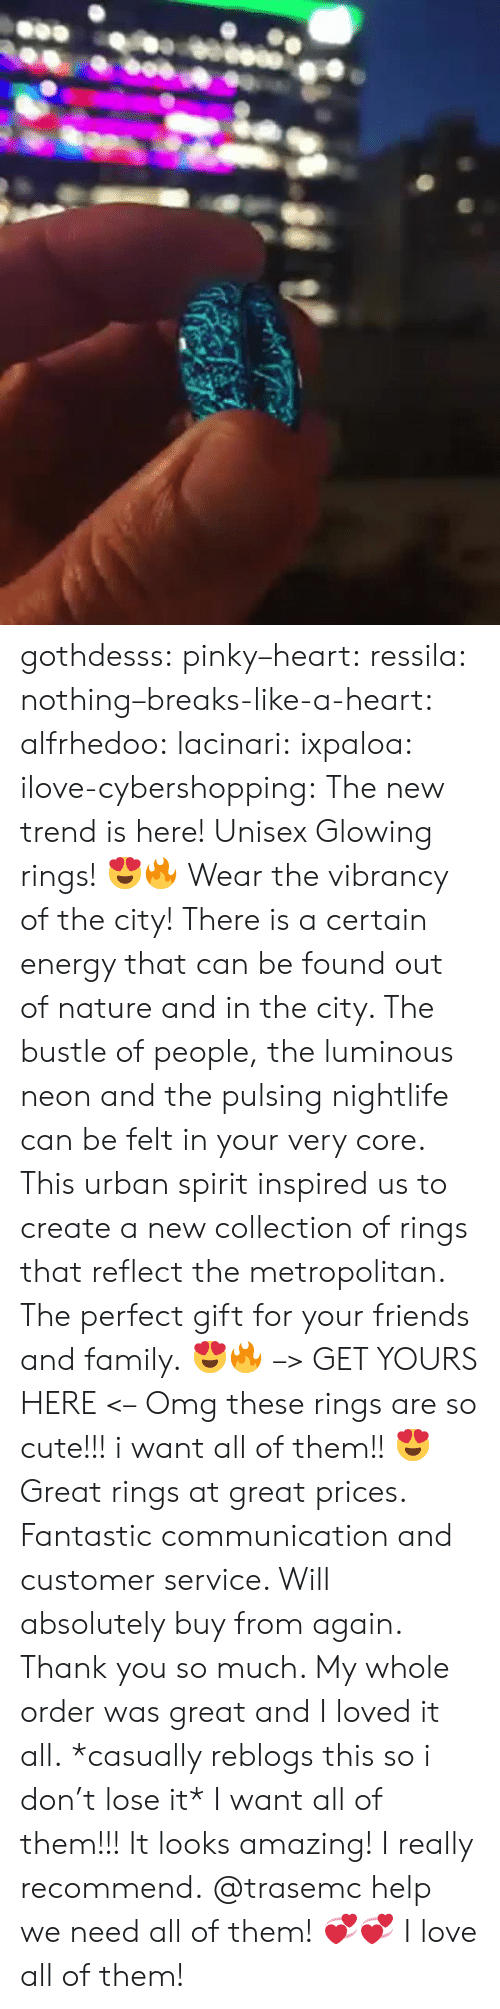 neon: gothdesss:  pinky–heart: ressila:  nothing–breaks-like-a-heart:  alfrhedoo:  lacinari:  ixpaloa:  ilove-cybershopping:  The new trend is here! Unisex Glowing rings! 😍🔥 Wear the vibrancy of the city! There is a certain energy that can be found out of nature and in the city. The bustle of people, the luminous neon and the pulsing nightlife can be felt in your very core. This urban spirit inspired us to create a new collection of rings that reflect the metropolitan. The perfect gift for your friends and family. 😍🔥 –> GET YOURS HERE <–  Omg these rings are so cute!!! i want all of them!! 😍  Great rings at great prices. Fantastic communication and customer service. Will absolutely buy from again. Thank you so much. My whole order was great and I loved it all.  *casually reblogs this so i don't lose it*  I want all of them!!!  It looks amazing! I really recommend.  @trasemc help we need all of them! 💞💞  I love all of them!